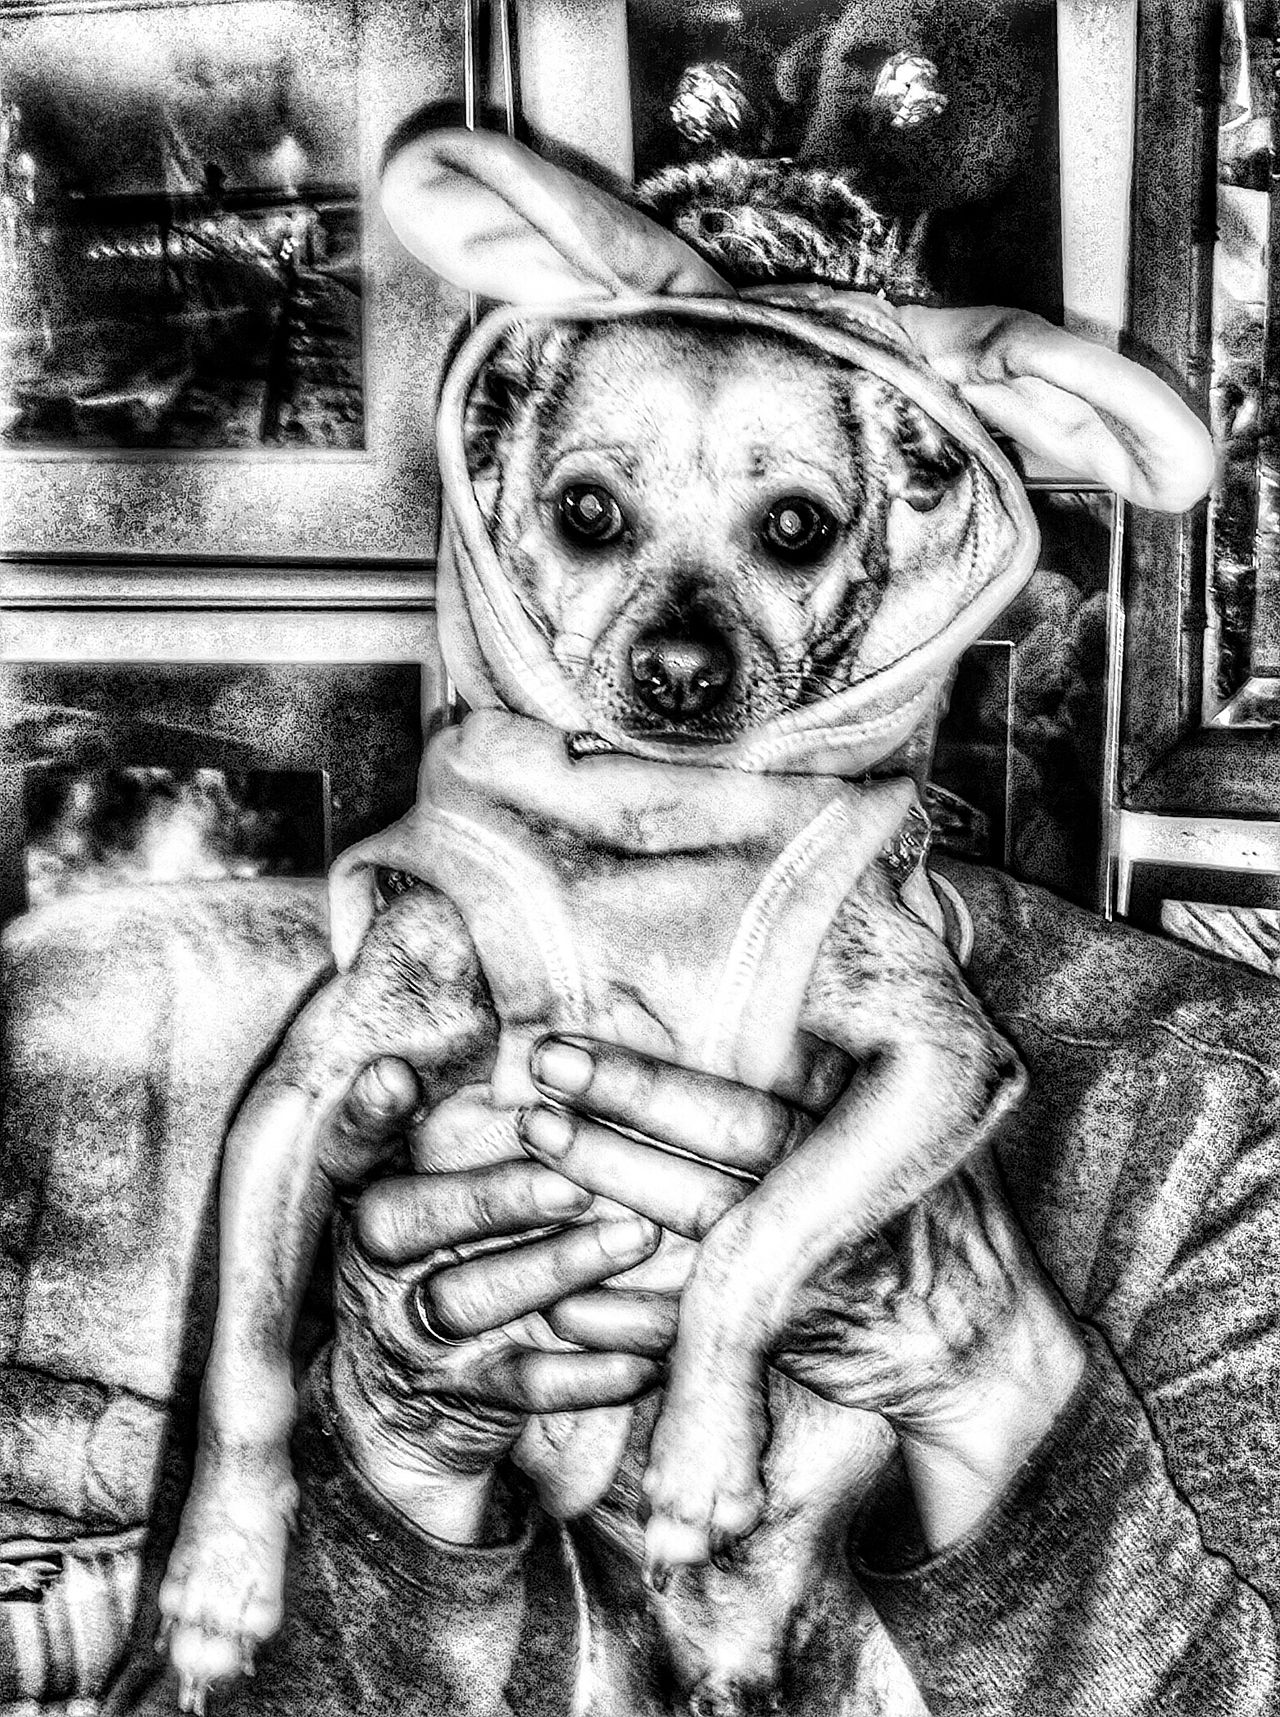 Chachi was cold so i happen to have a bunmy cover he could use to stay warm adopted Enjoying Life Black And White Photography Dog Love Adopt A Shelter Pet Ocean Beach Pet Portrait Special Effects Taking Photos Adopted Adopt Don't Buy!! Adoptee